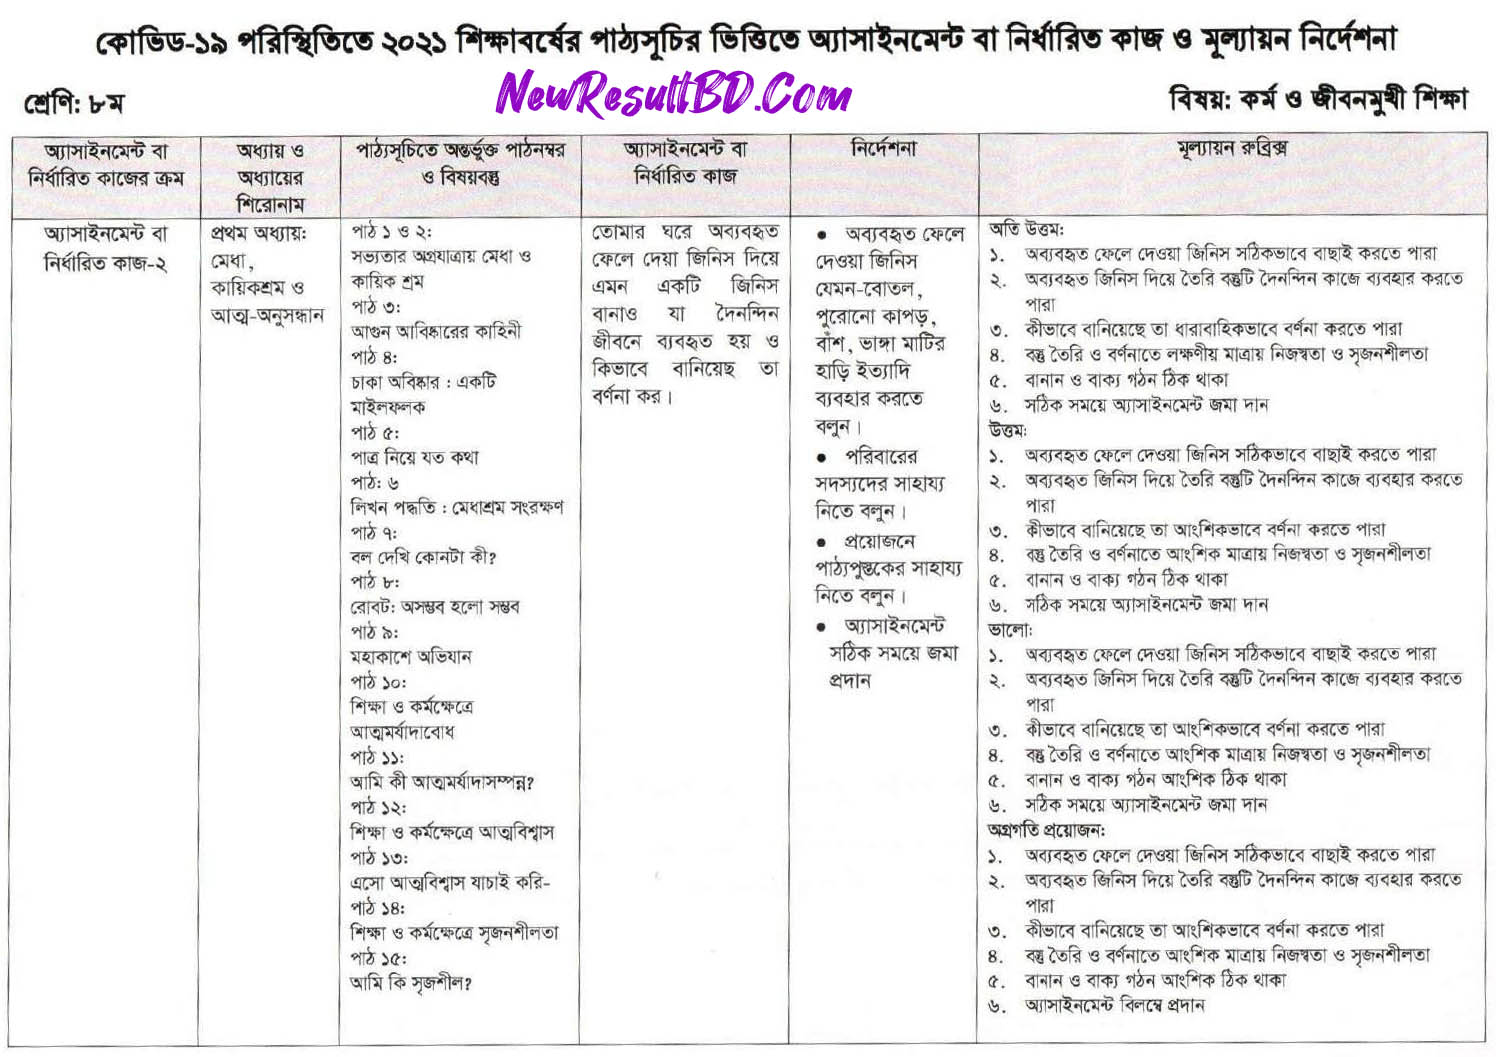 Class 8 Work & Life Oriented Education 12th Week Assignment